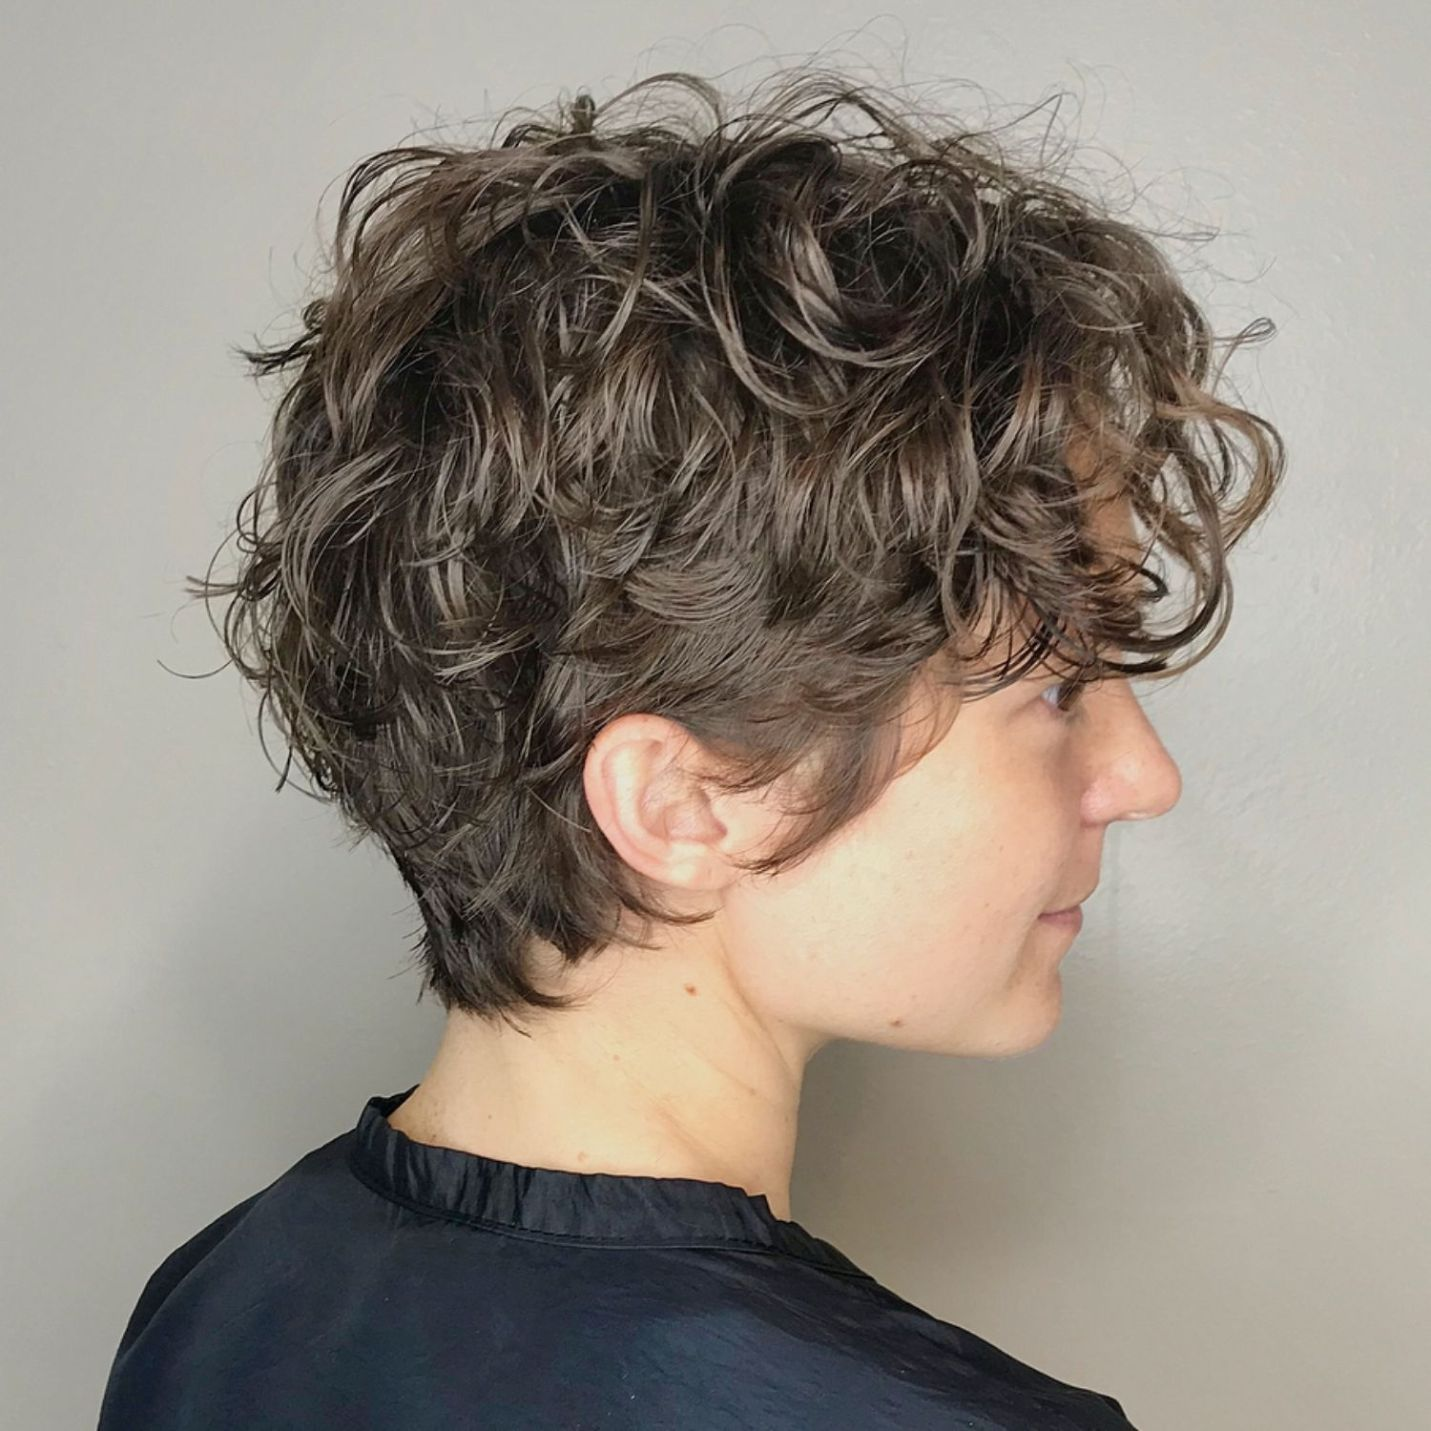 60 Most Delightful Short Wavy Hairstyles Short Wavy Hair Curly Hair Photos Curly Pixie Haircuts